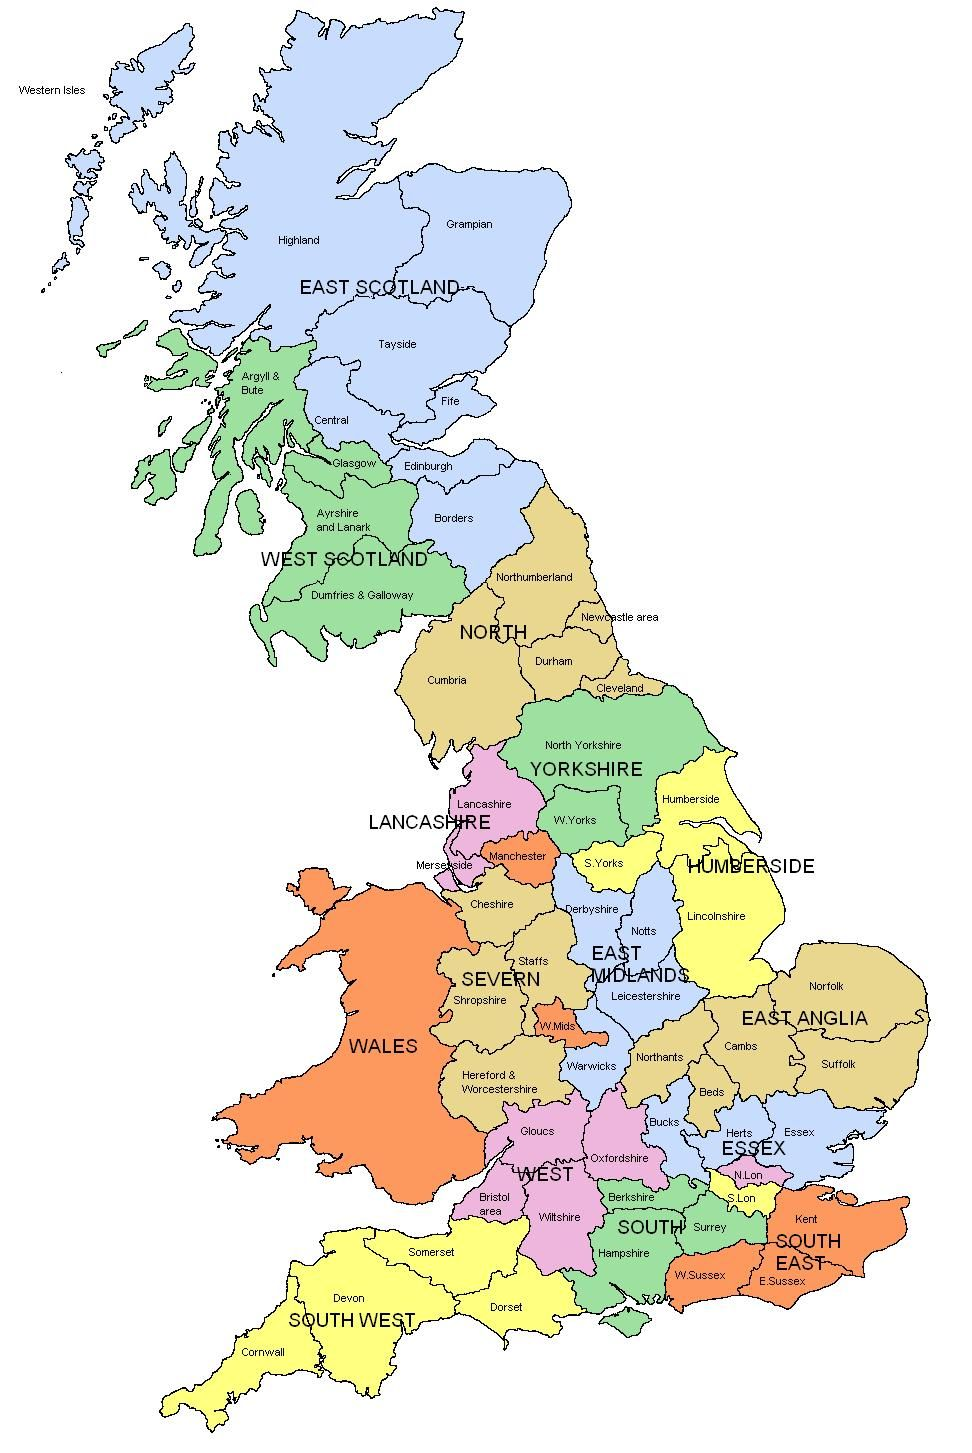 Map of Regions and counties of England, Wales, Scotland | England ...